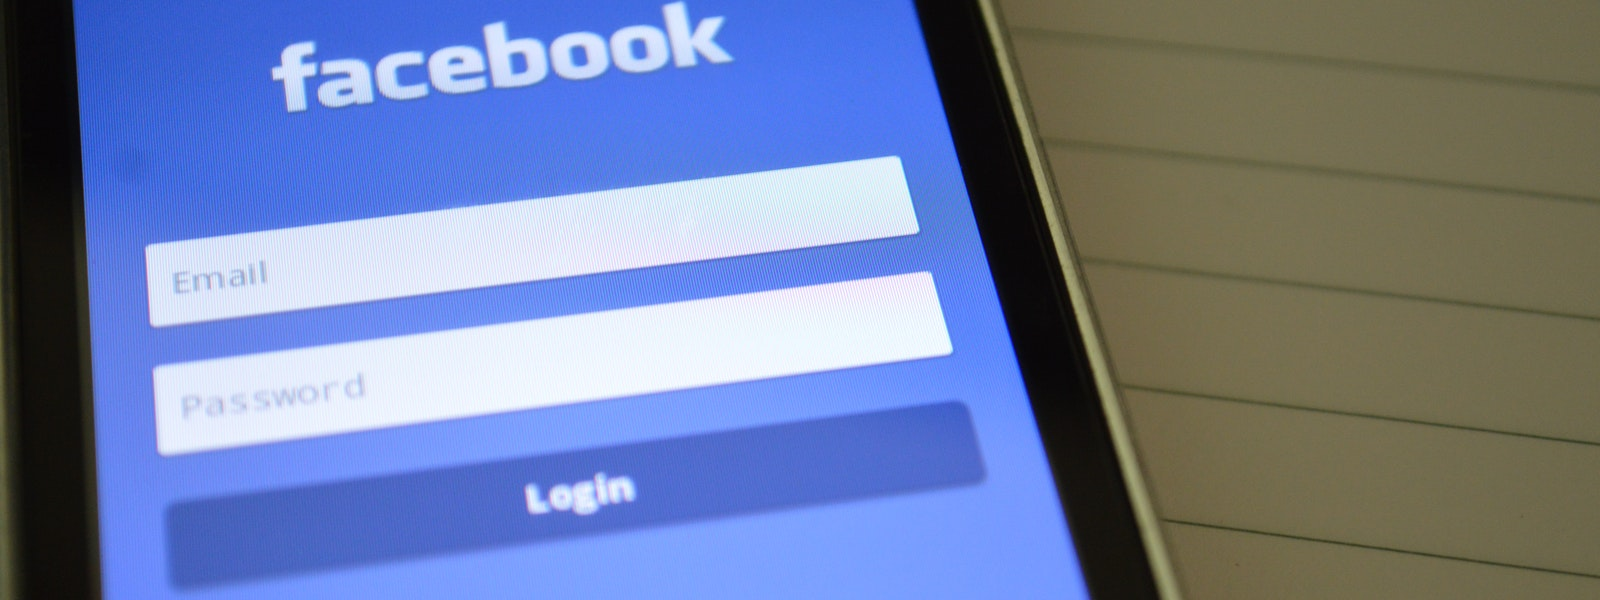 Facebook launches new seasonal tools for small business users